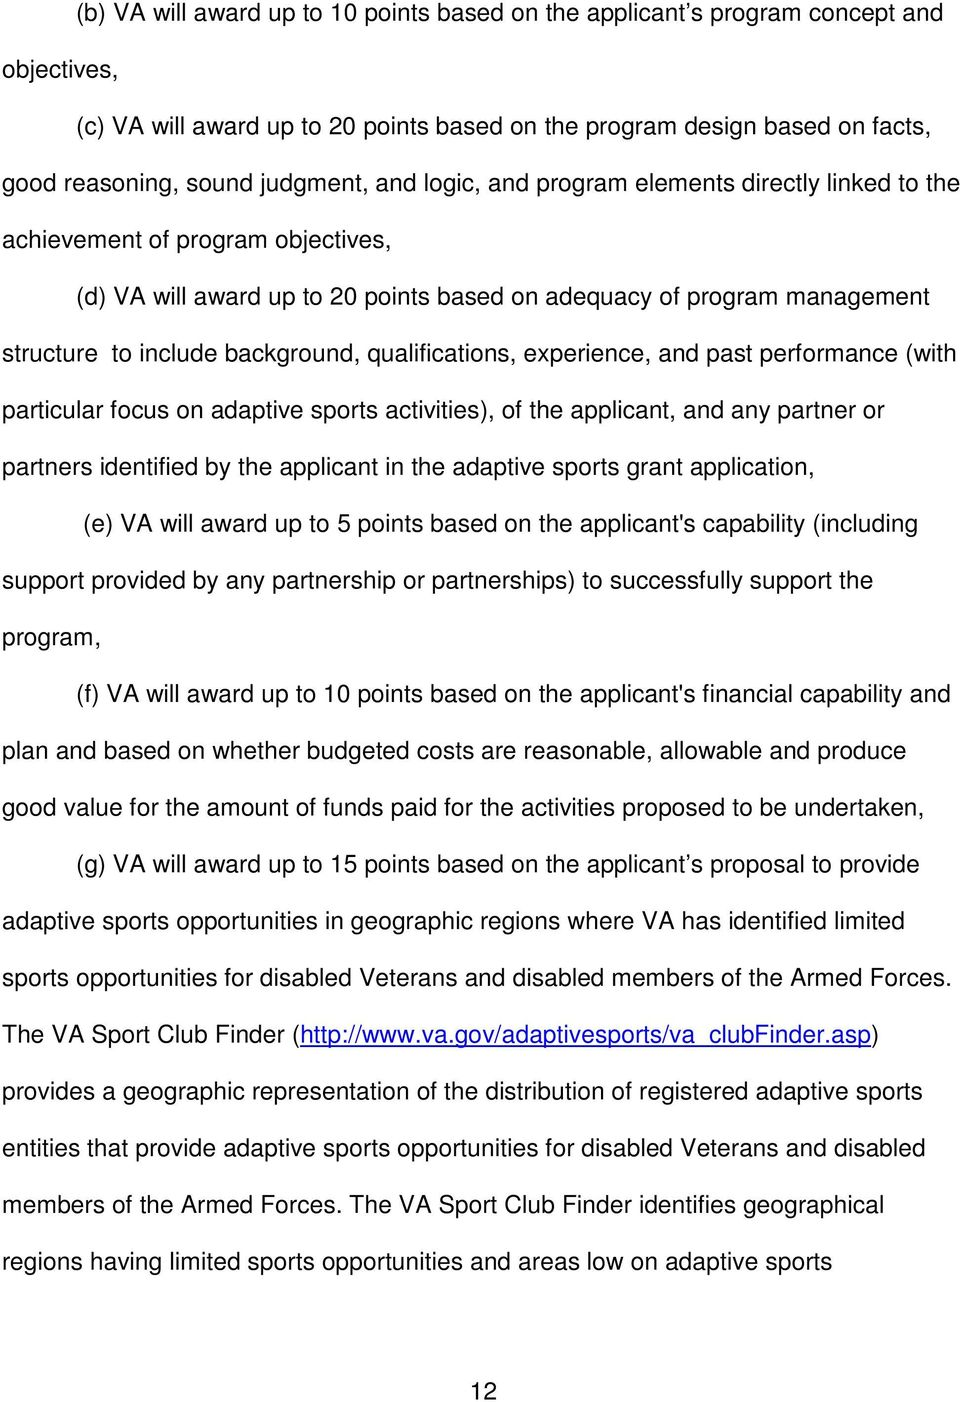 background, qualifications, experience, and past performance (with particular focus on adaptive sports activities), of the applicant, and any partner or partners identified by the applicant in the